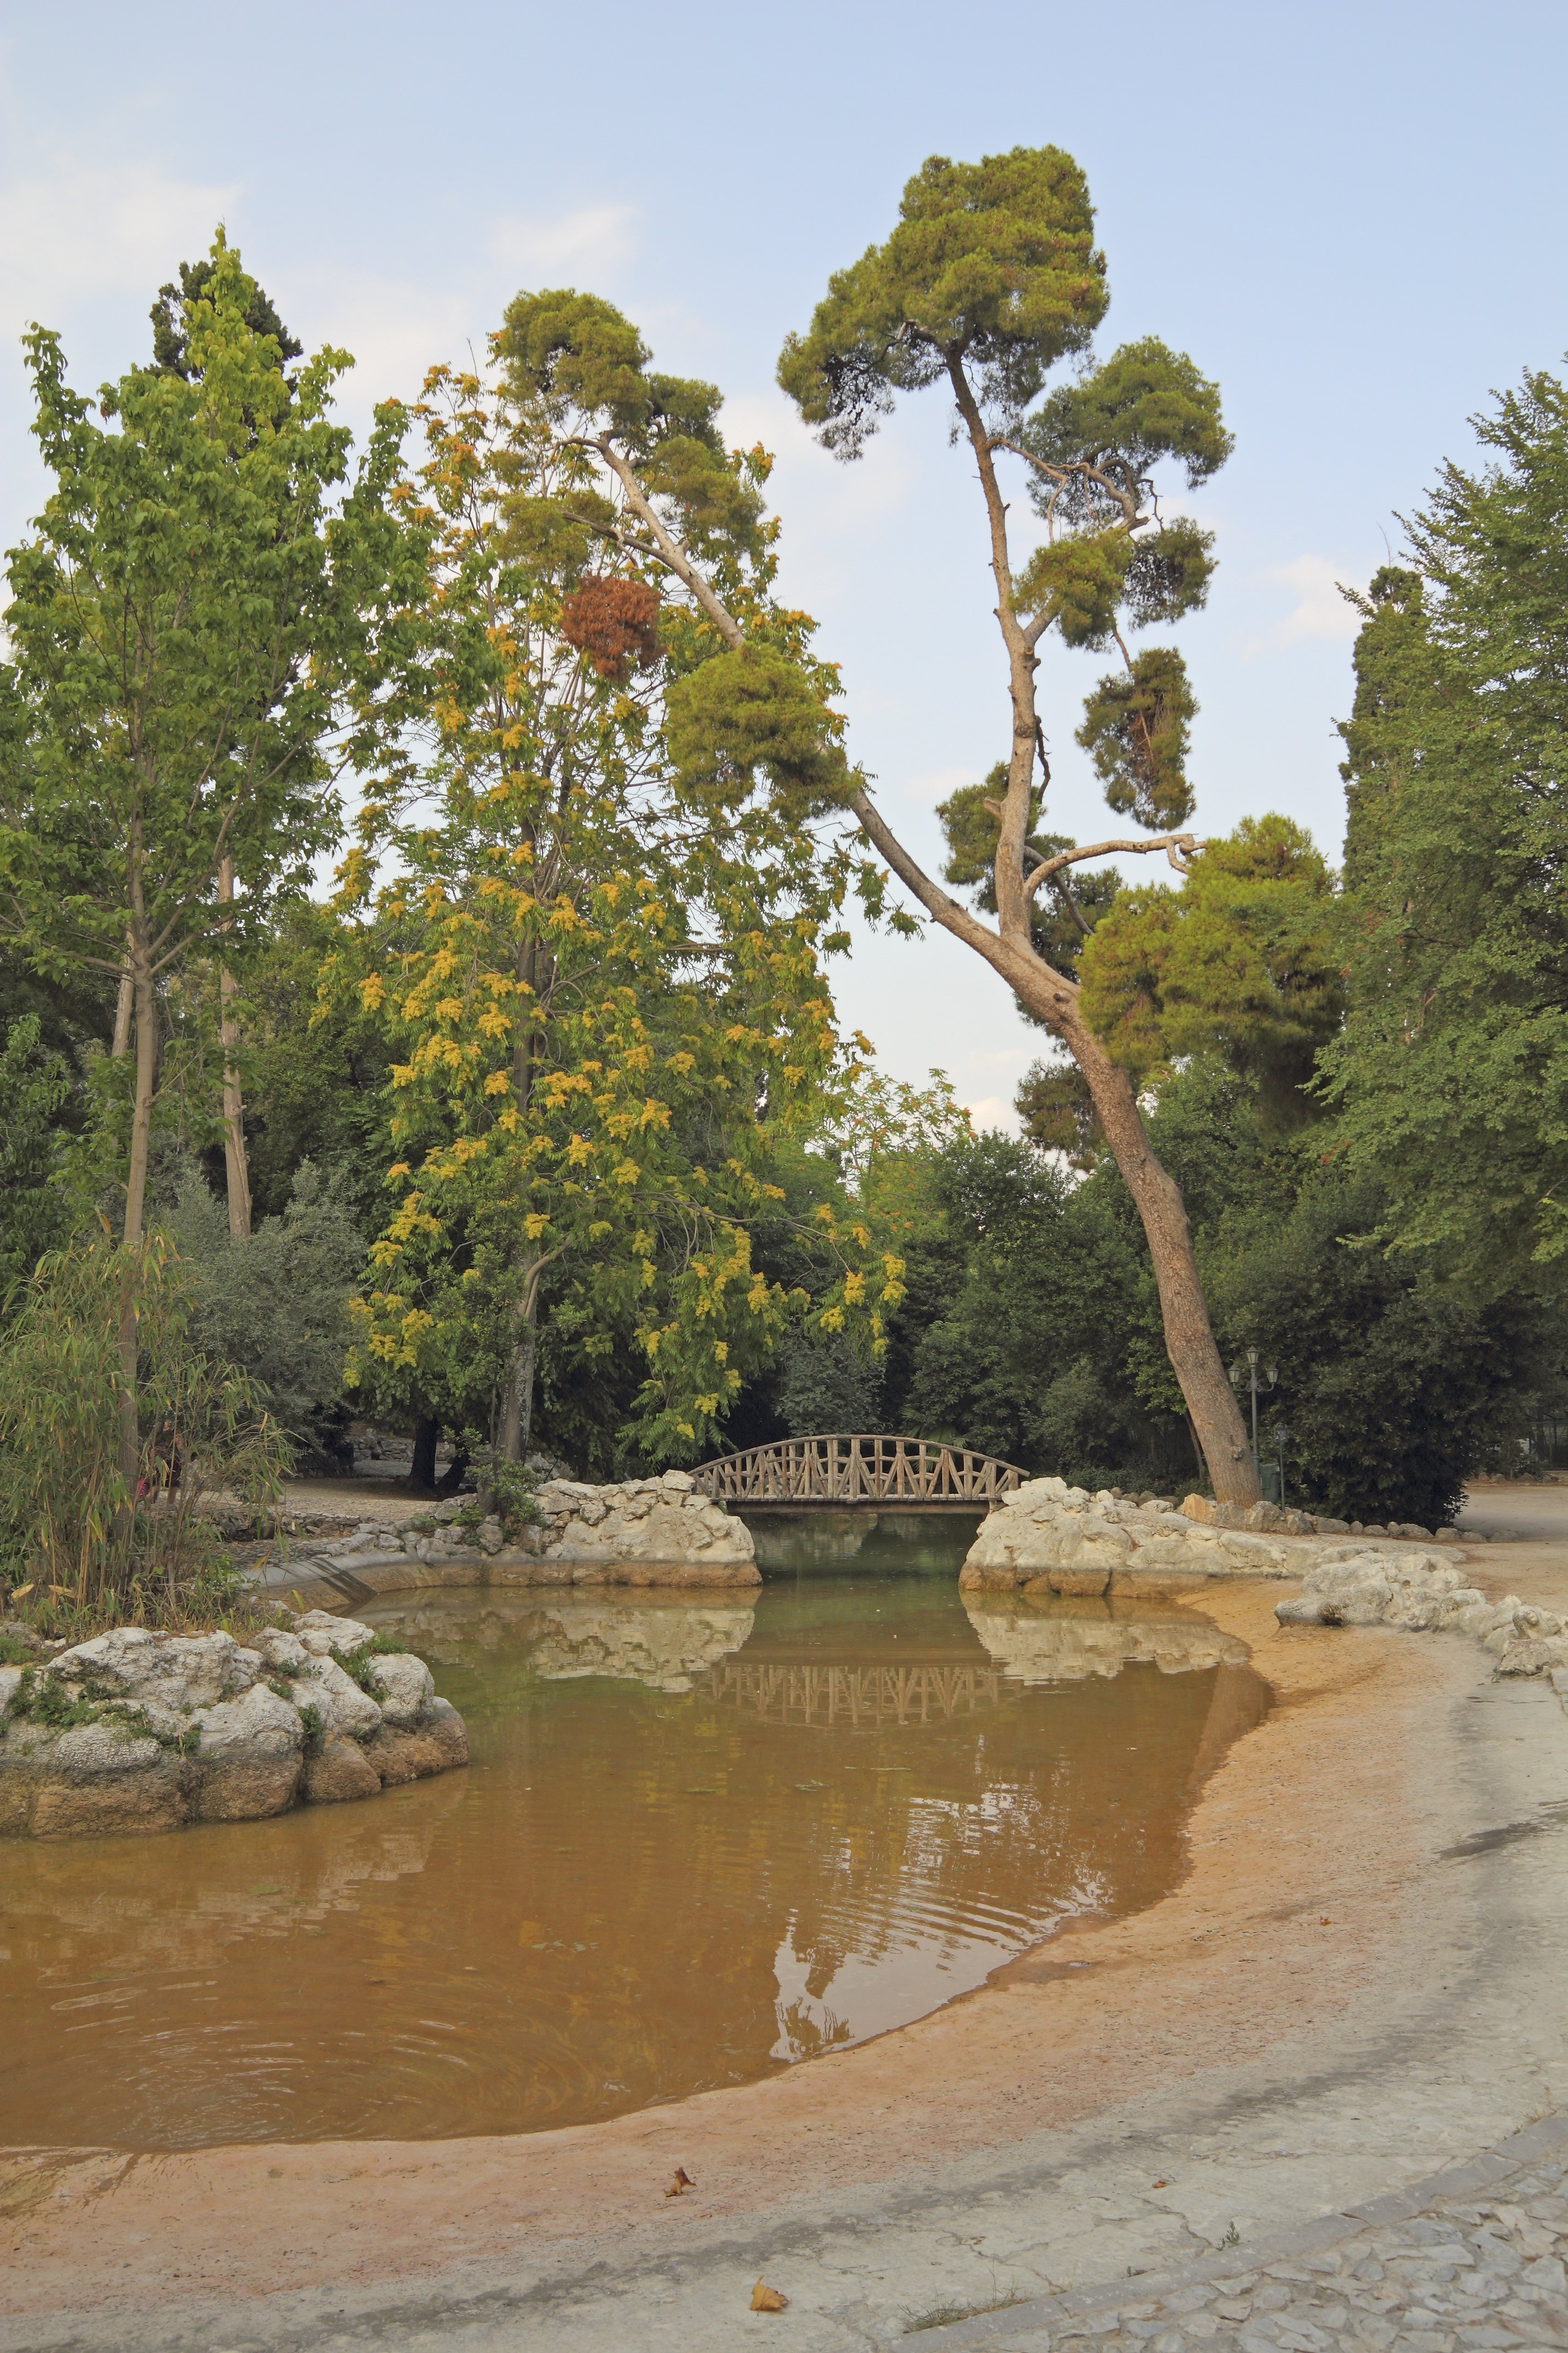 National Garden, Athens - Wikiwand